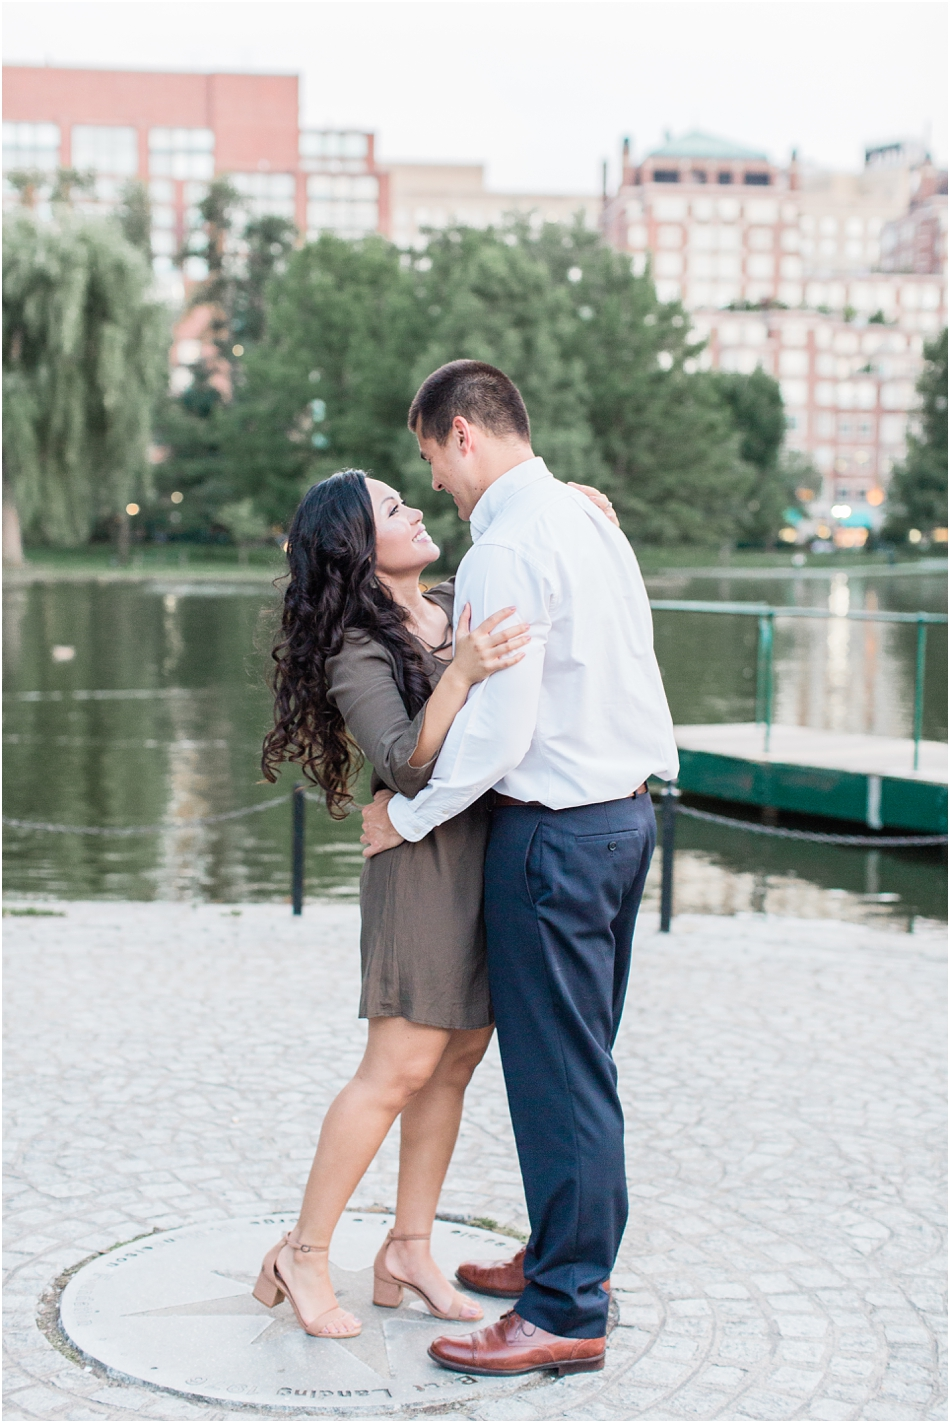 sheryl_corey_acorn_street_engagement_boston_commons_massachusetts_cape_cod_new_england_wedding_photographer_Meredith_Jane_Photography_photo_2019.jpg